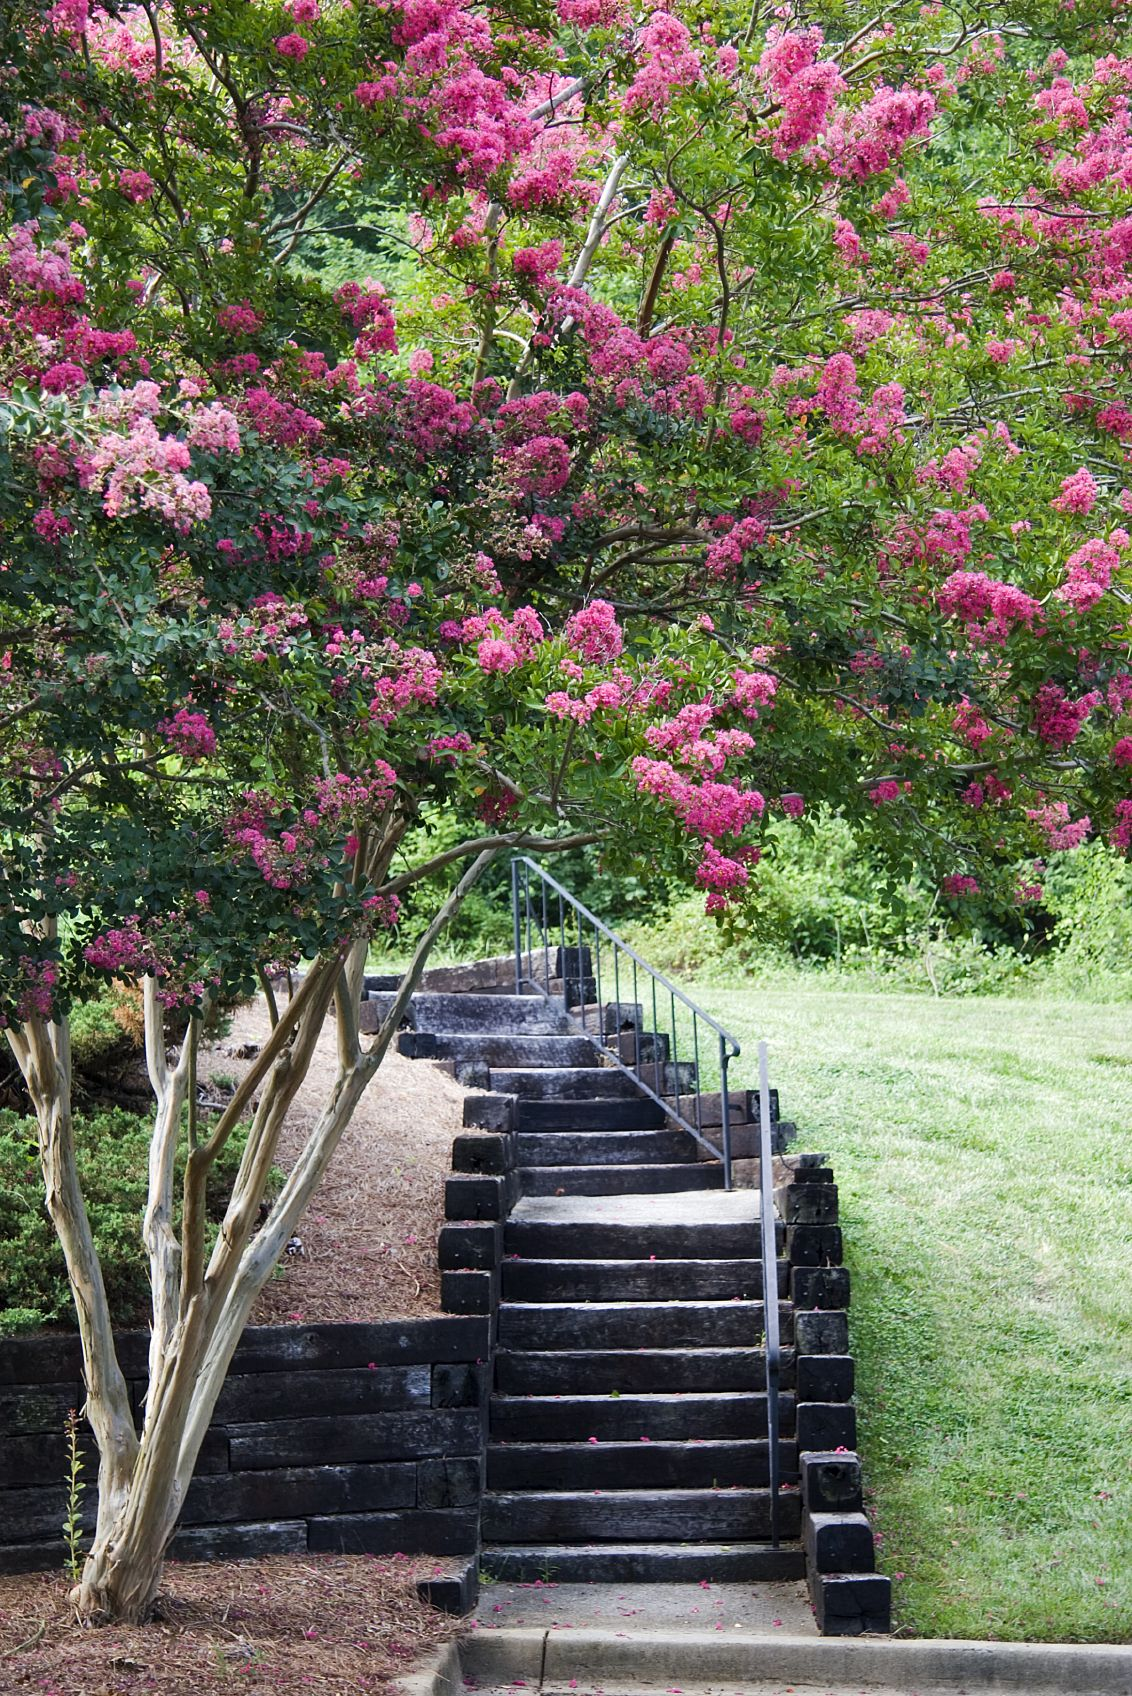 Crepe Myrtle Root System Are Crepe Myrtle Roots Invasive Myrtle Tree Crepe Myrtle Trees Crepe Myrtle